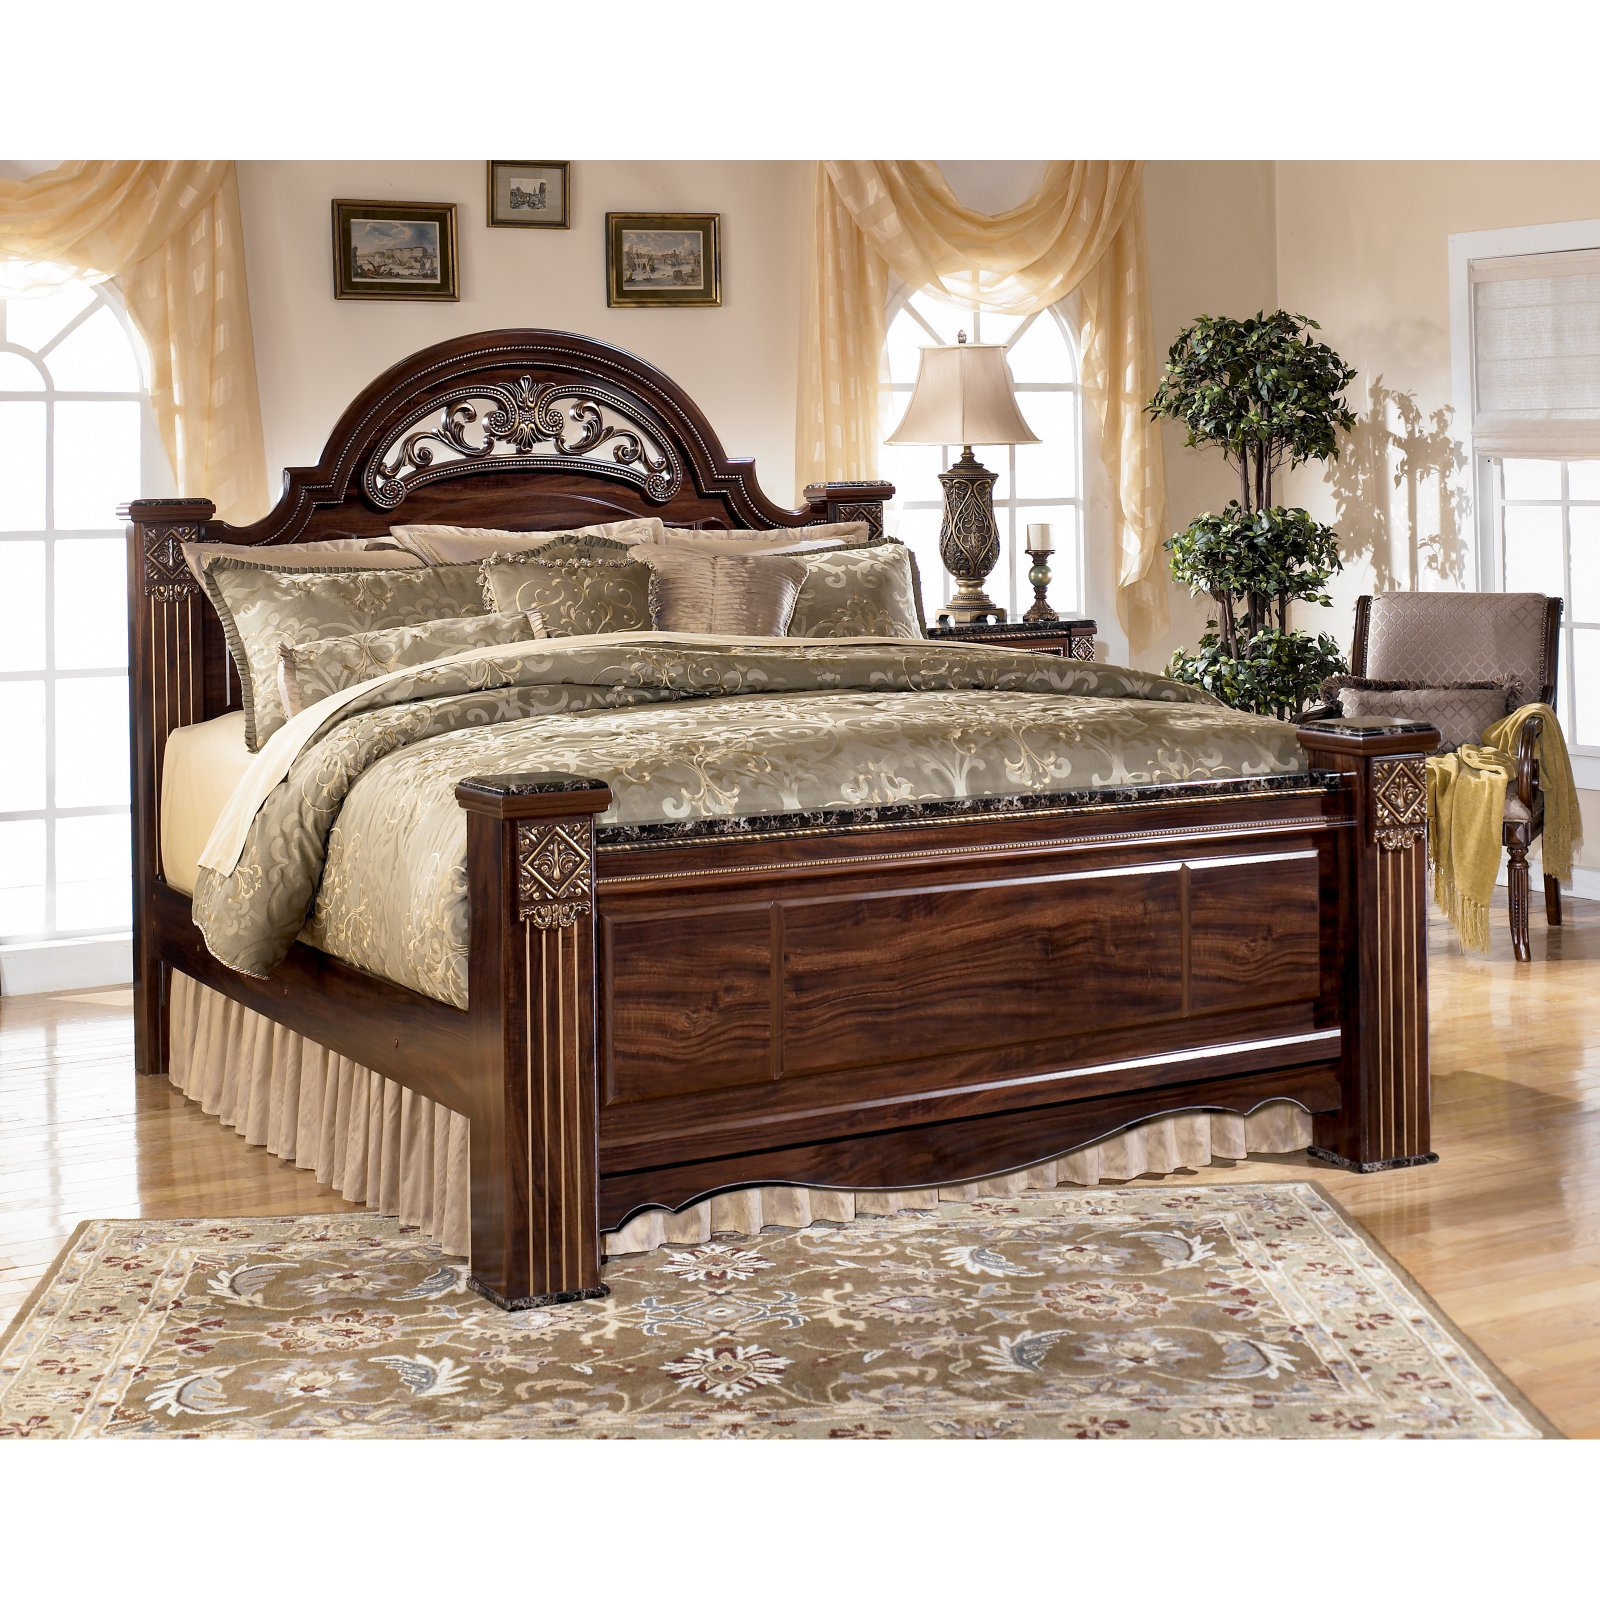 Signature Design by Ashley Gabriela Poster Bed